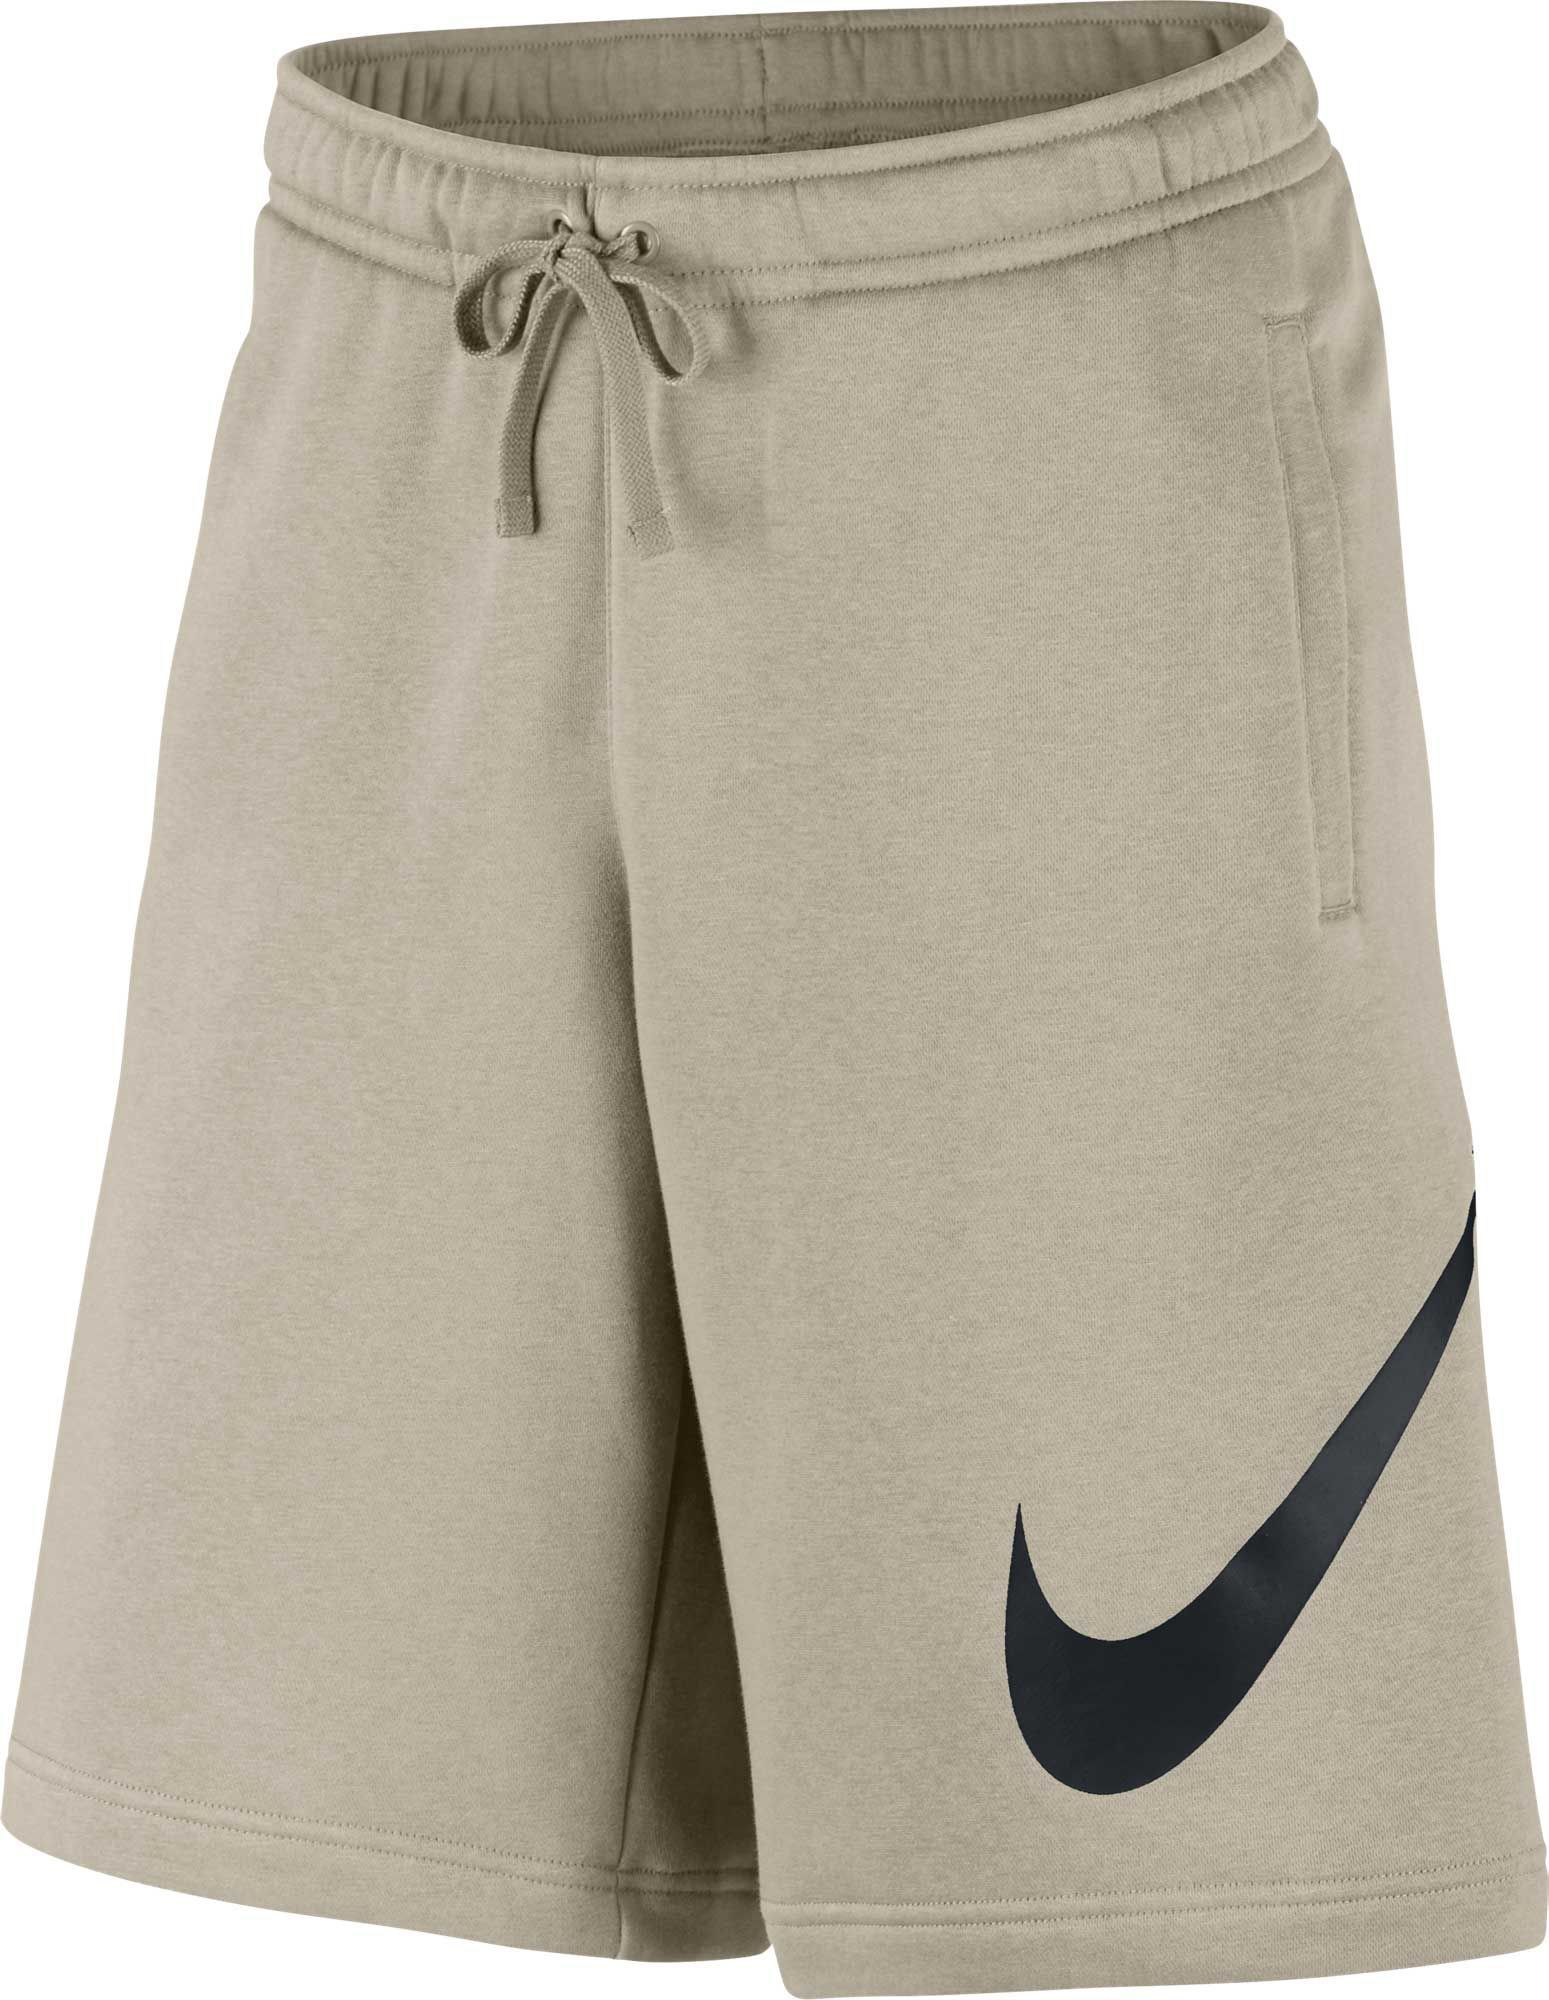 a5b6dfc283a7 Nike Men s Sportswear Club Fleece Sweatshorts in 2019